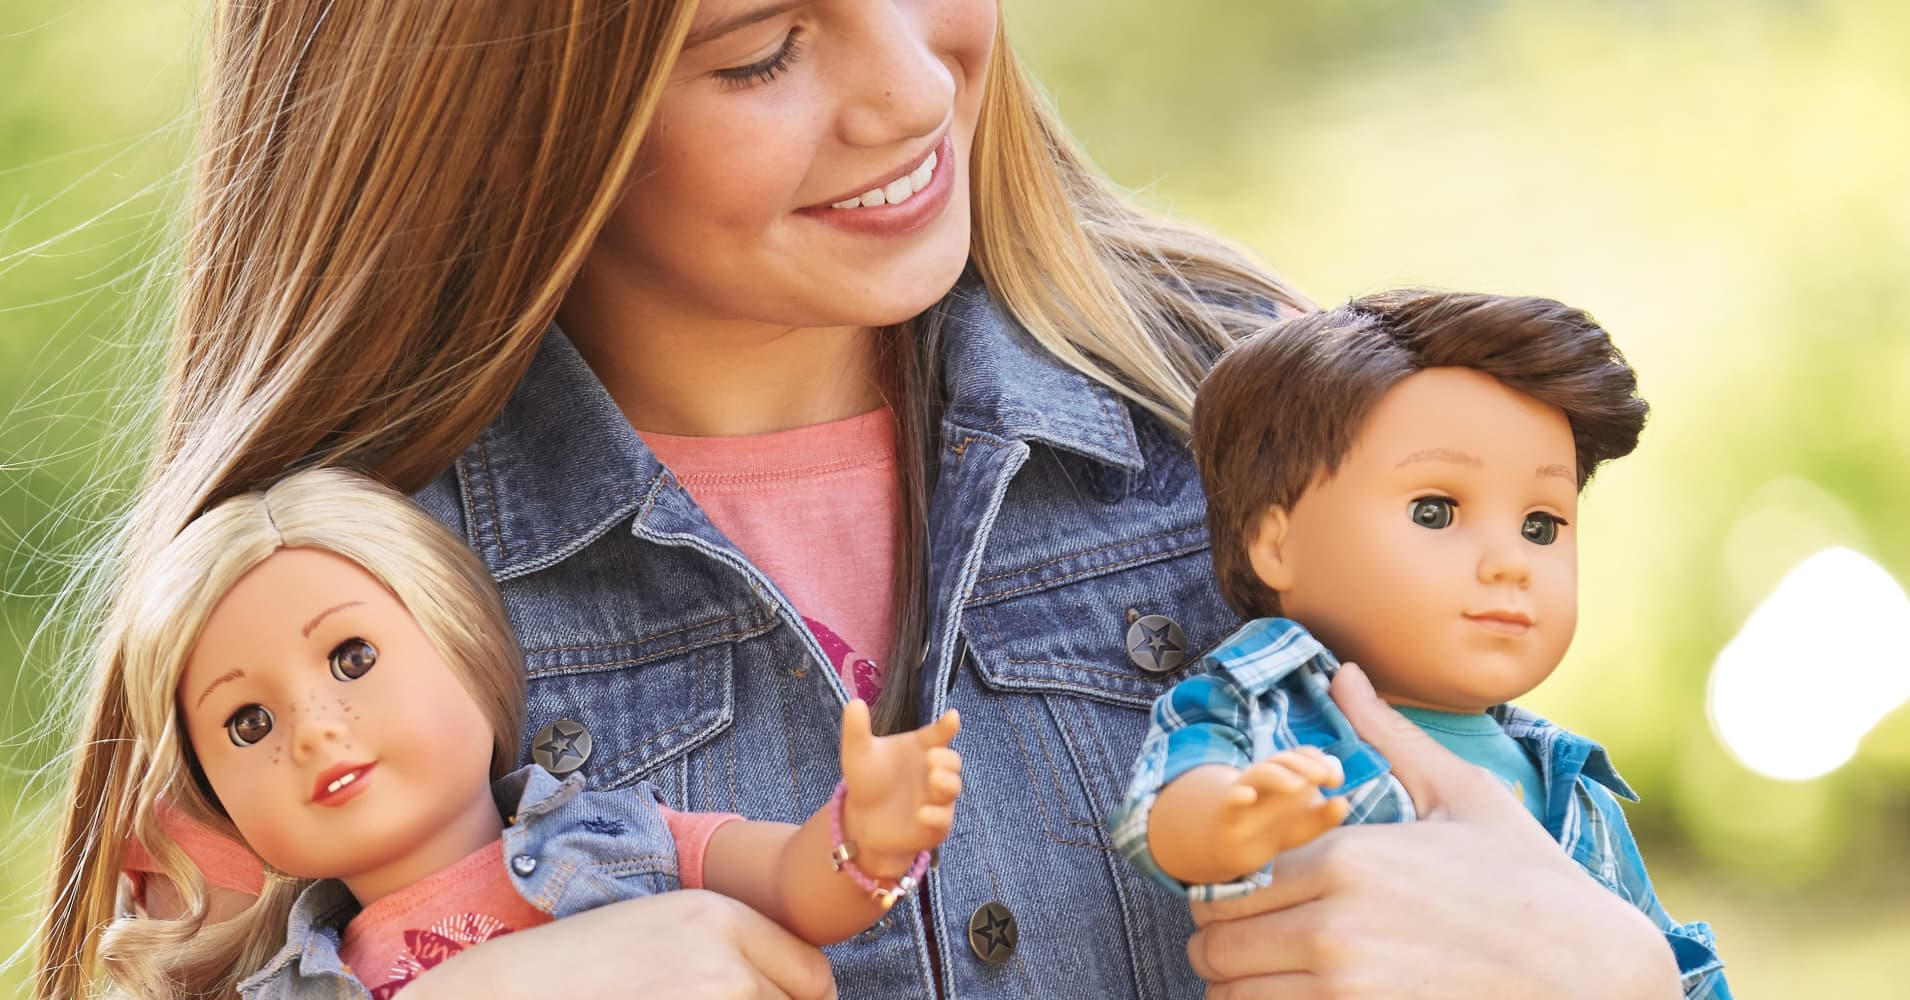 Even Barbie can't save Mattel from holiday sales slump